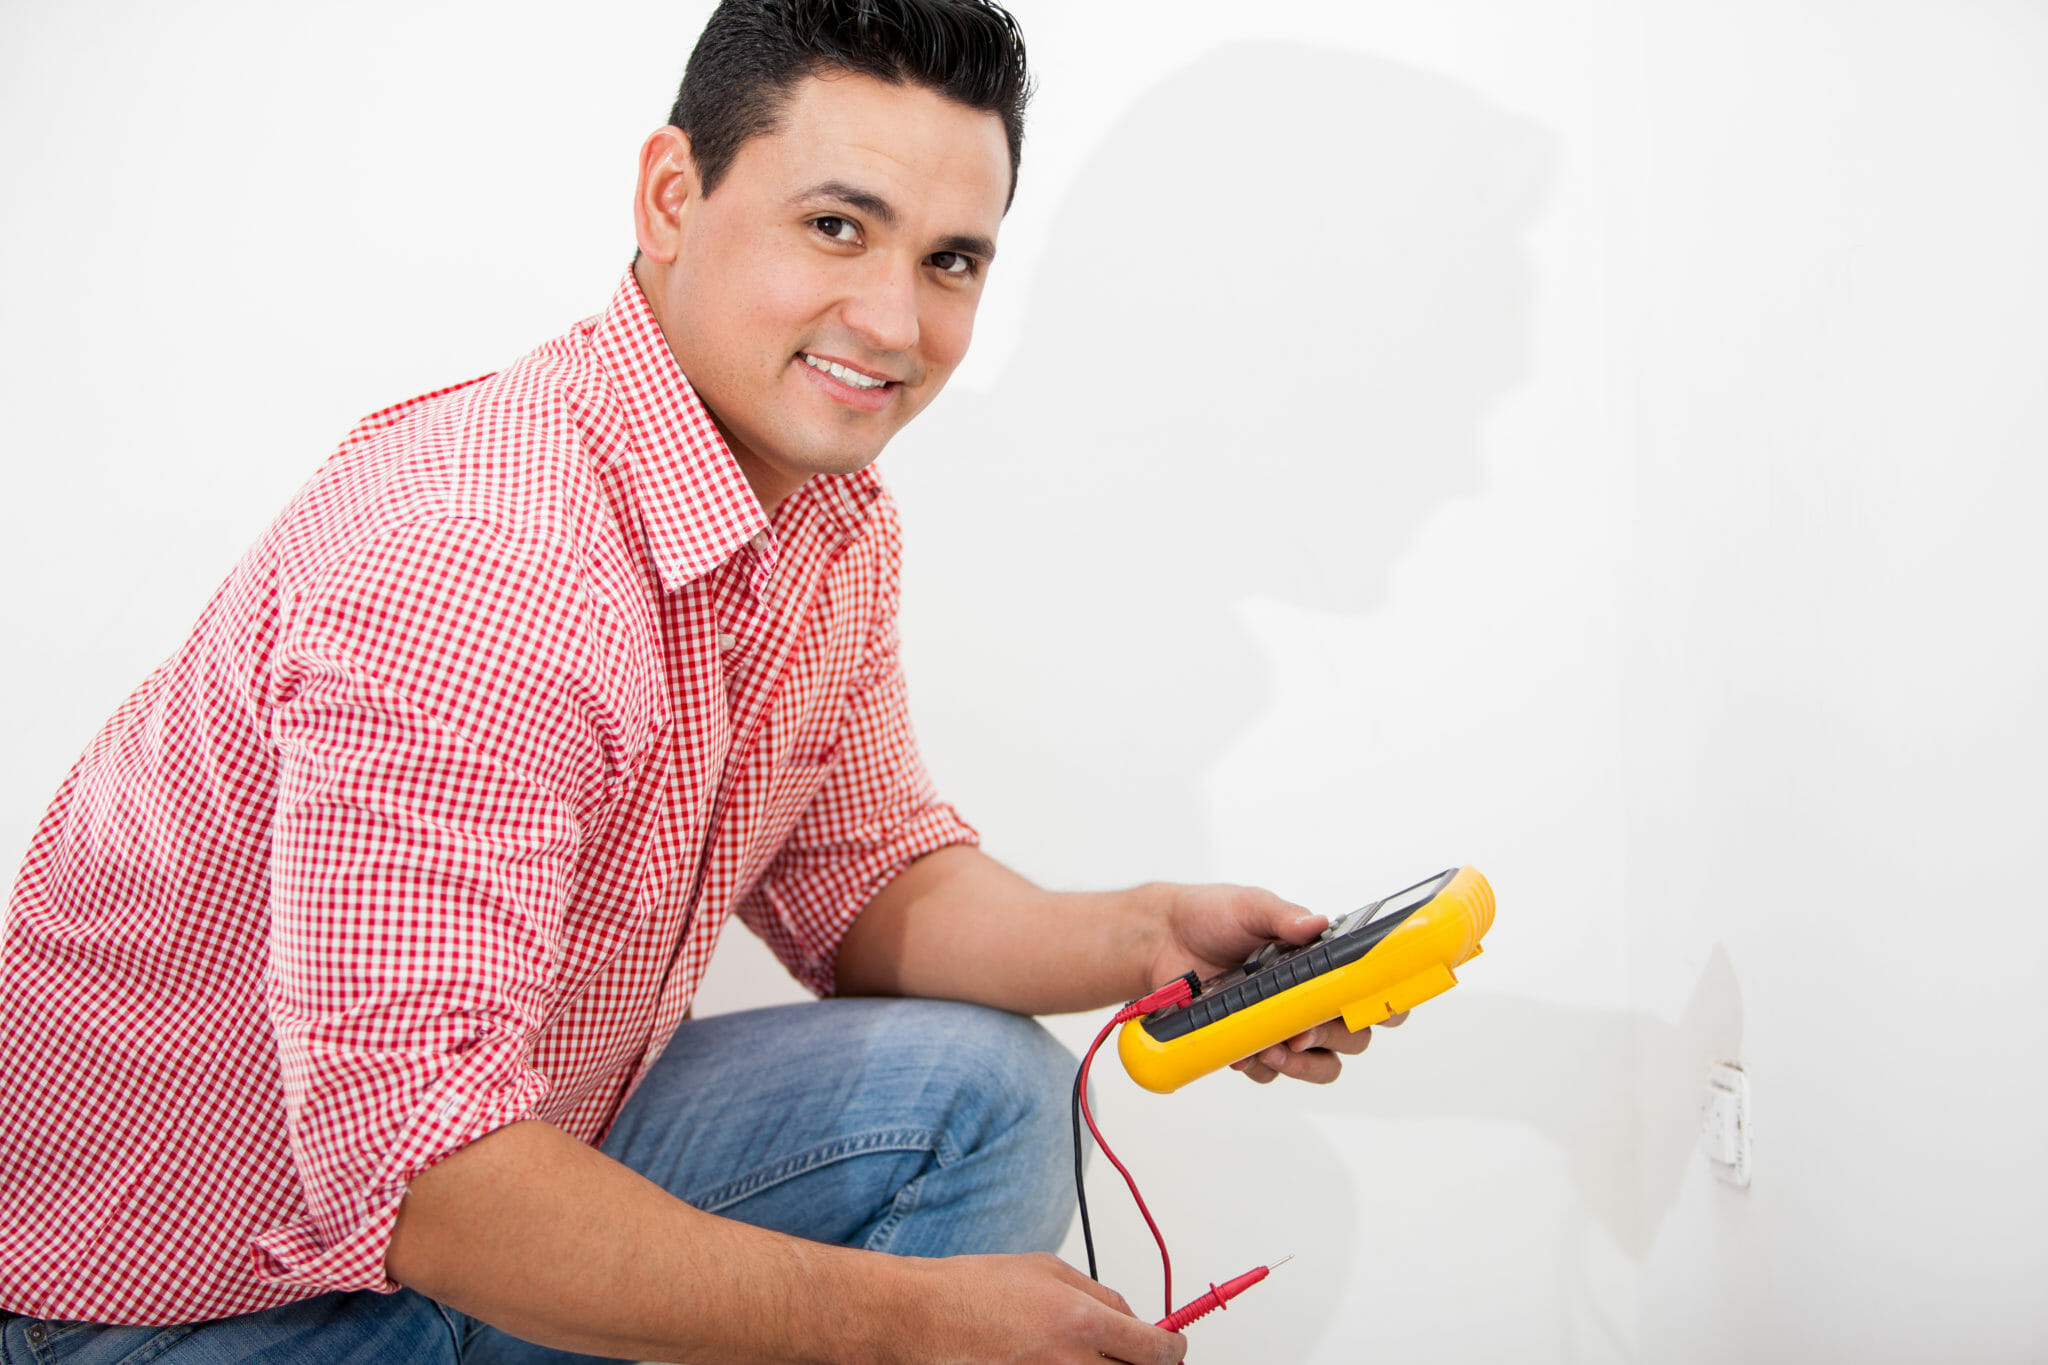 Home Inspector checking for electrical defects